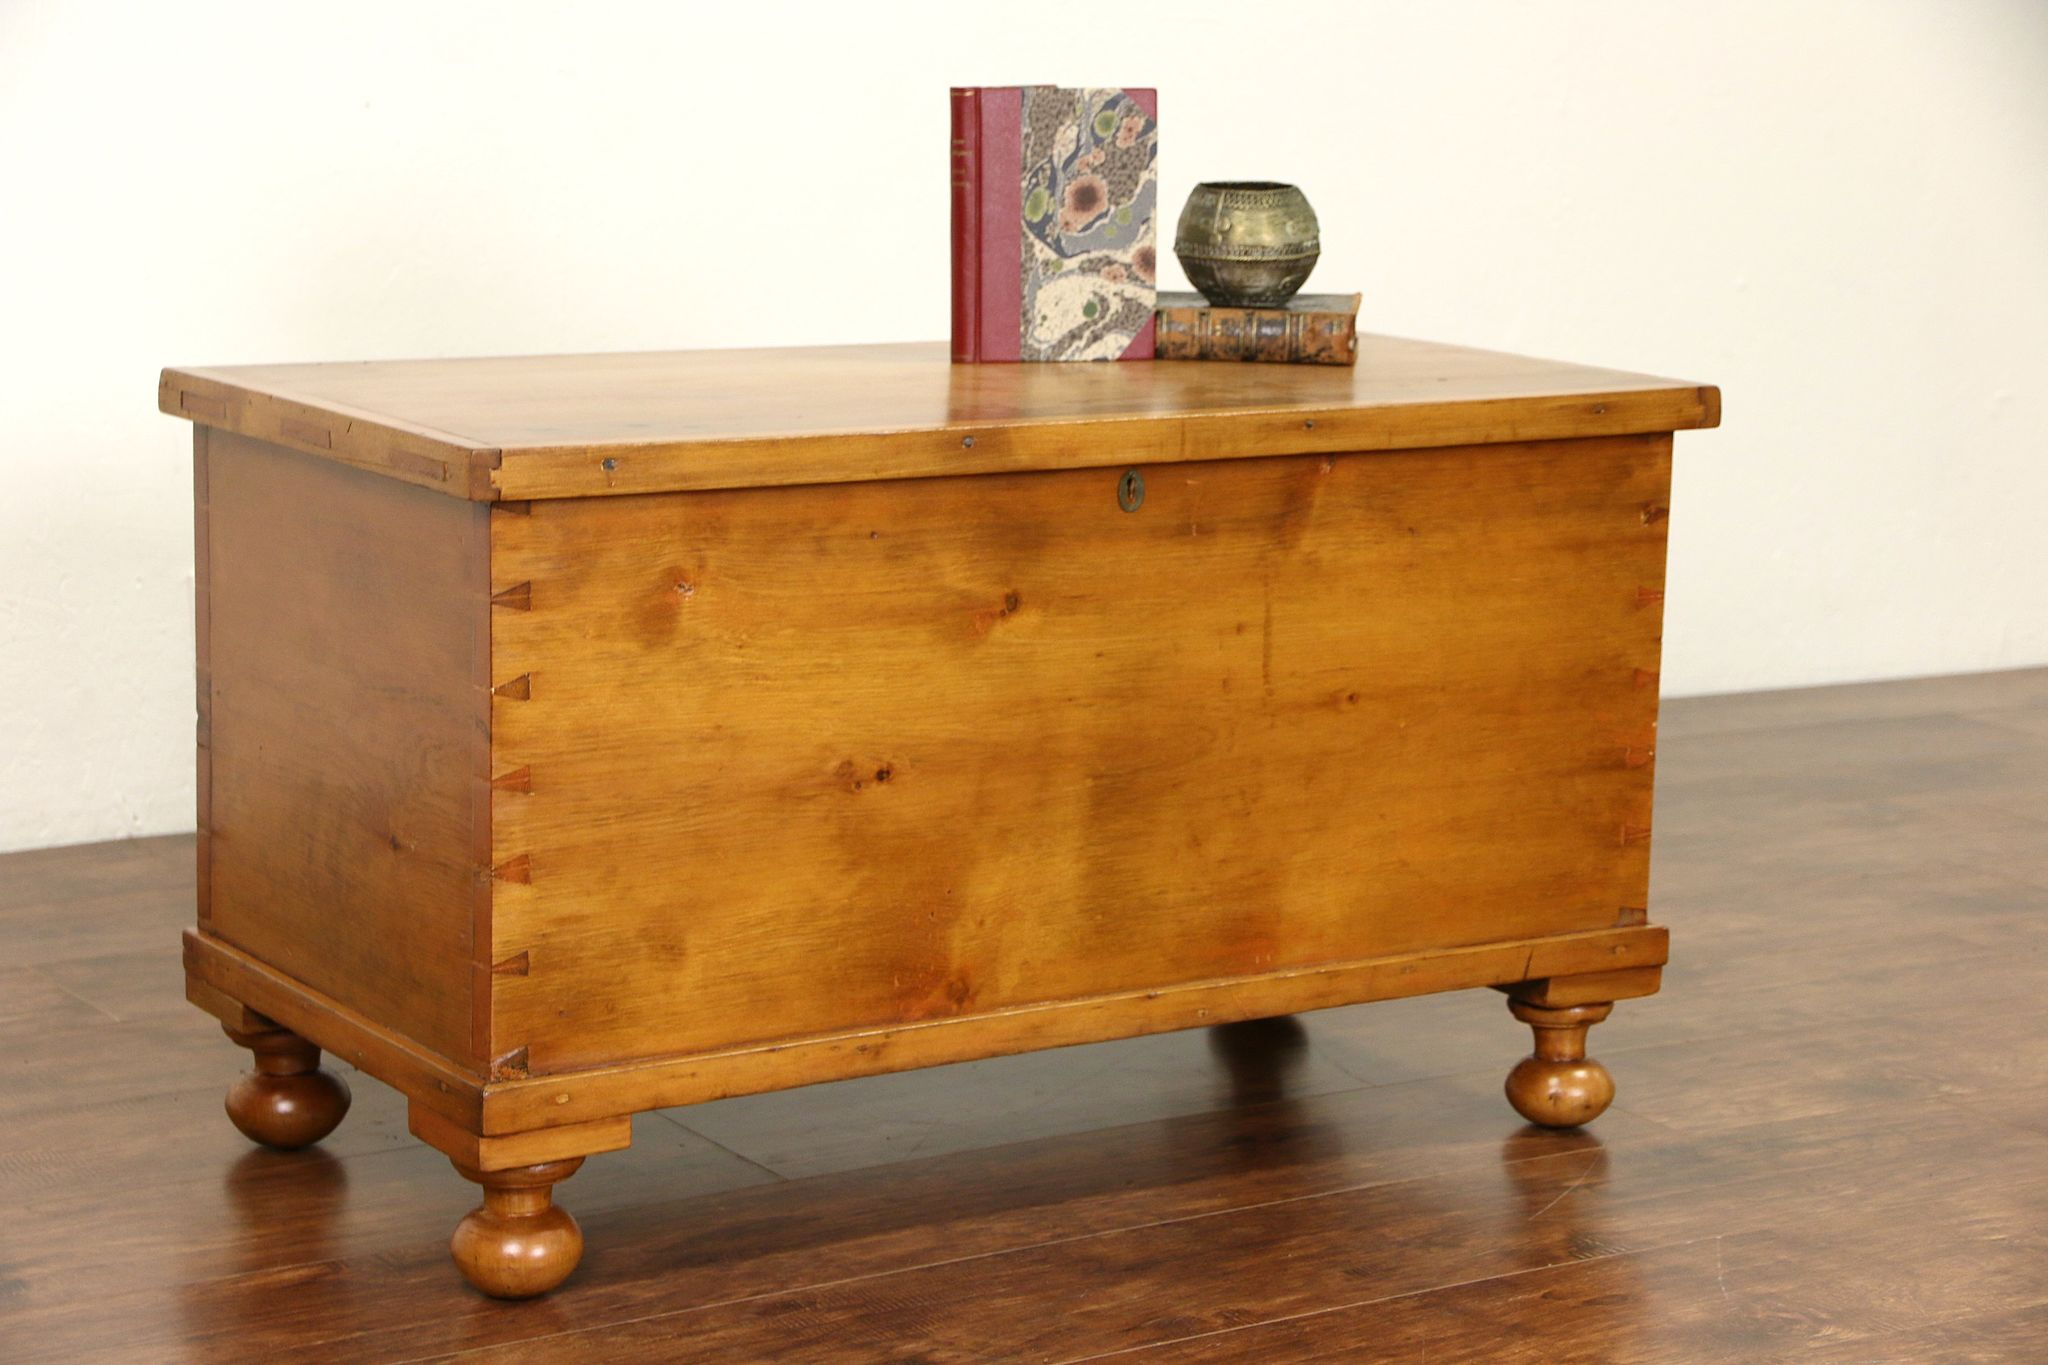 SOLD Country Pine 6 Board 1850 Antique Trunk Blanket Chest Or Coffee Table Bun Feet Harp